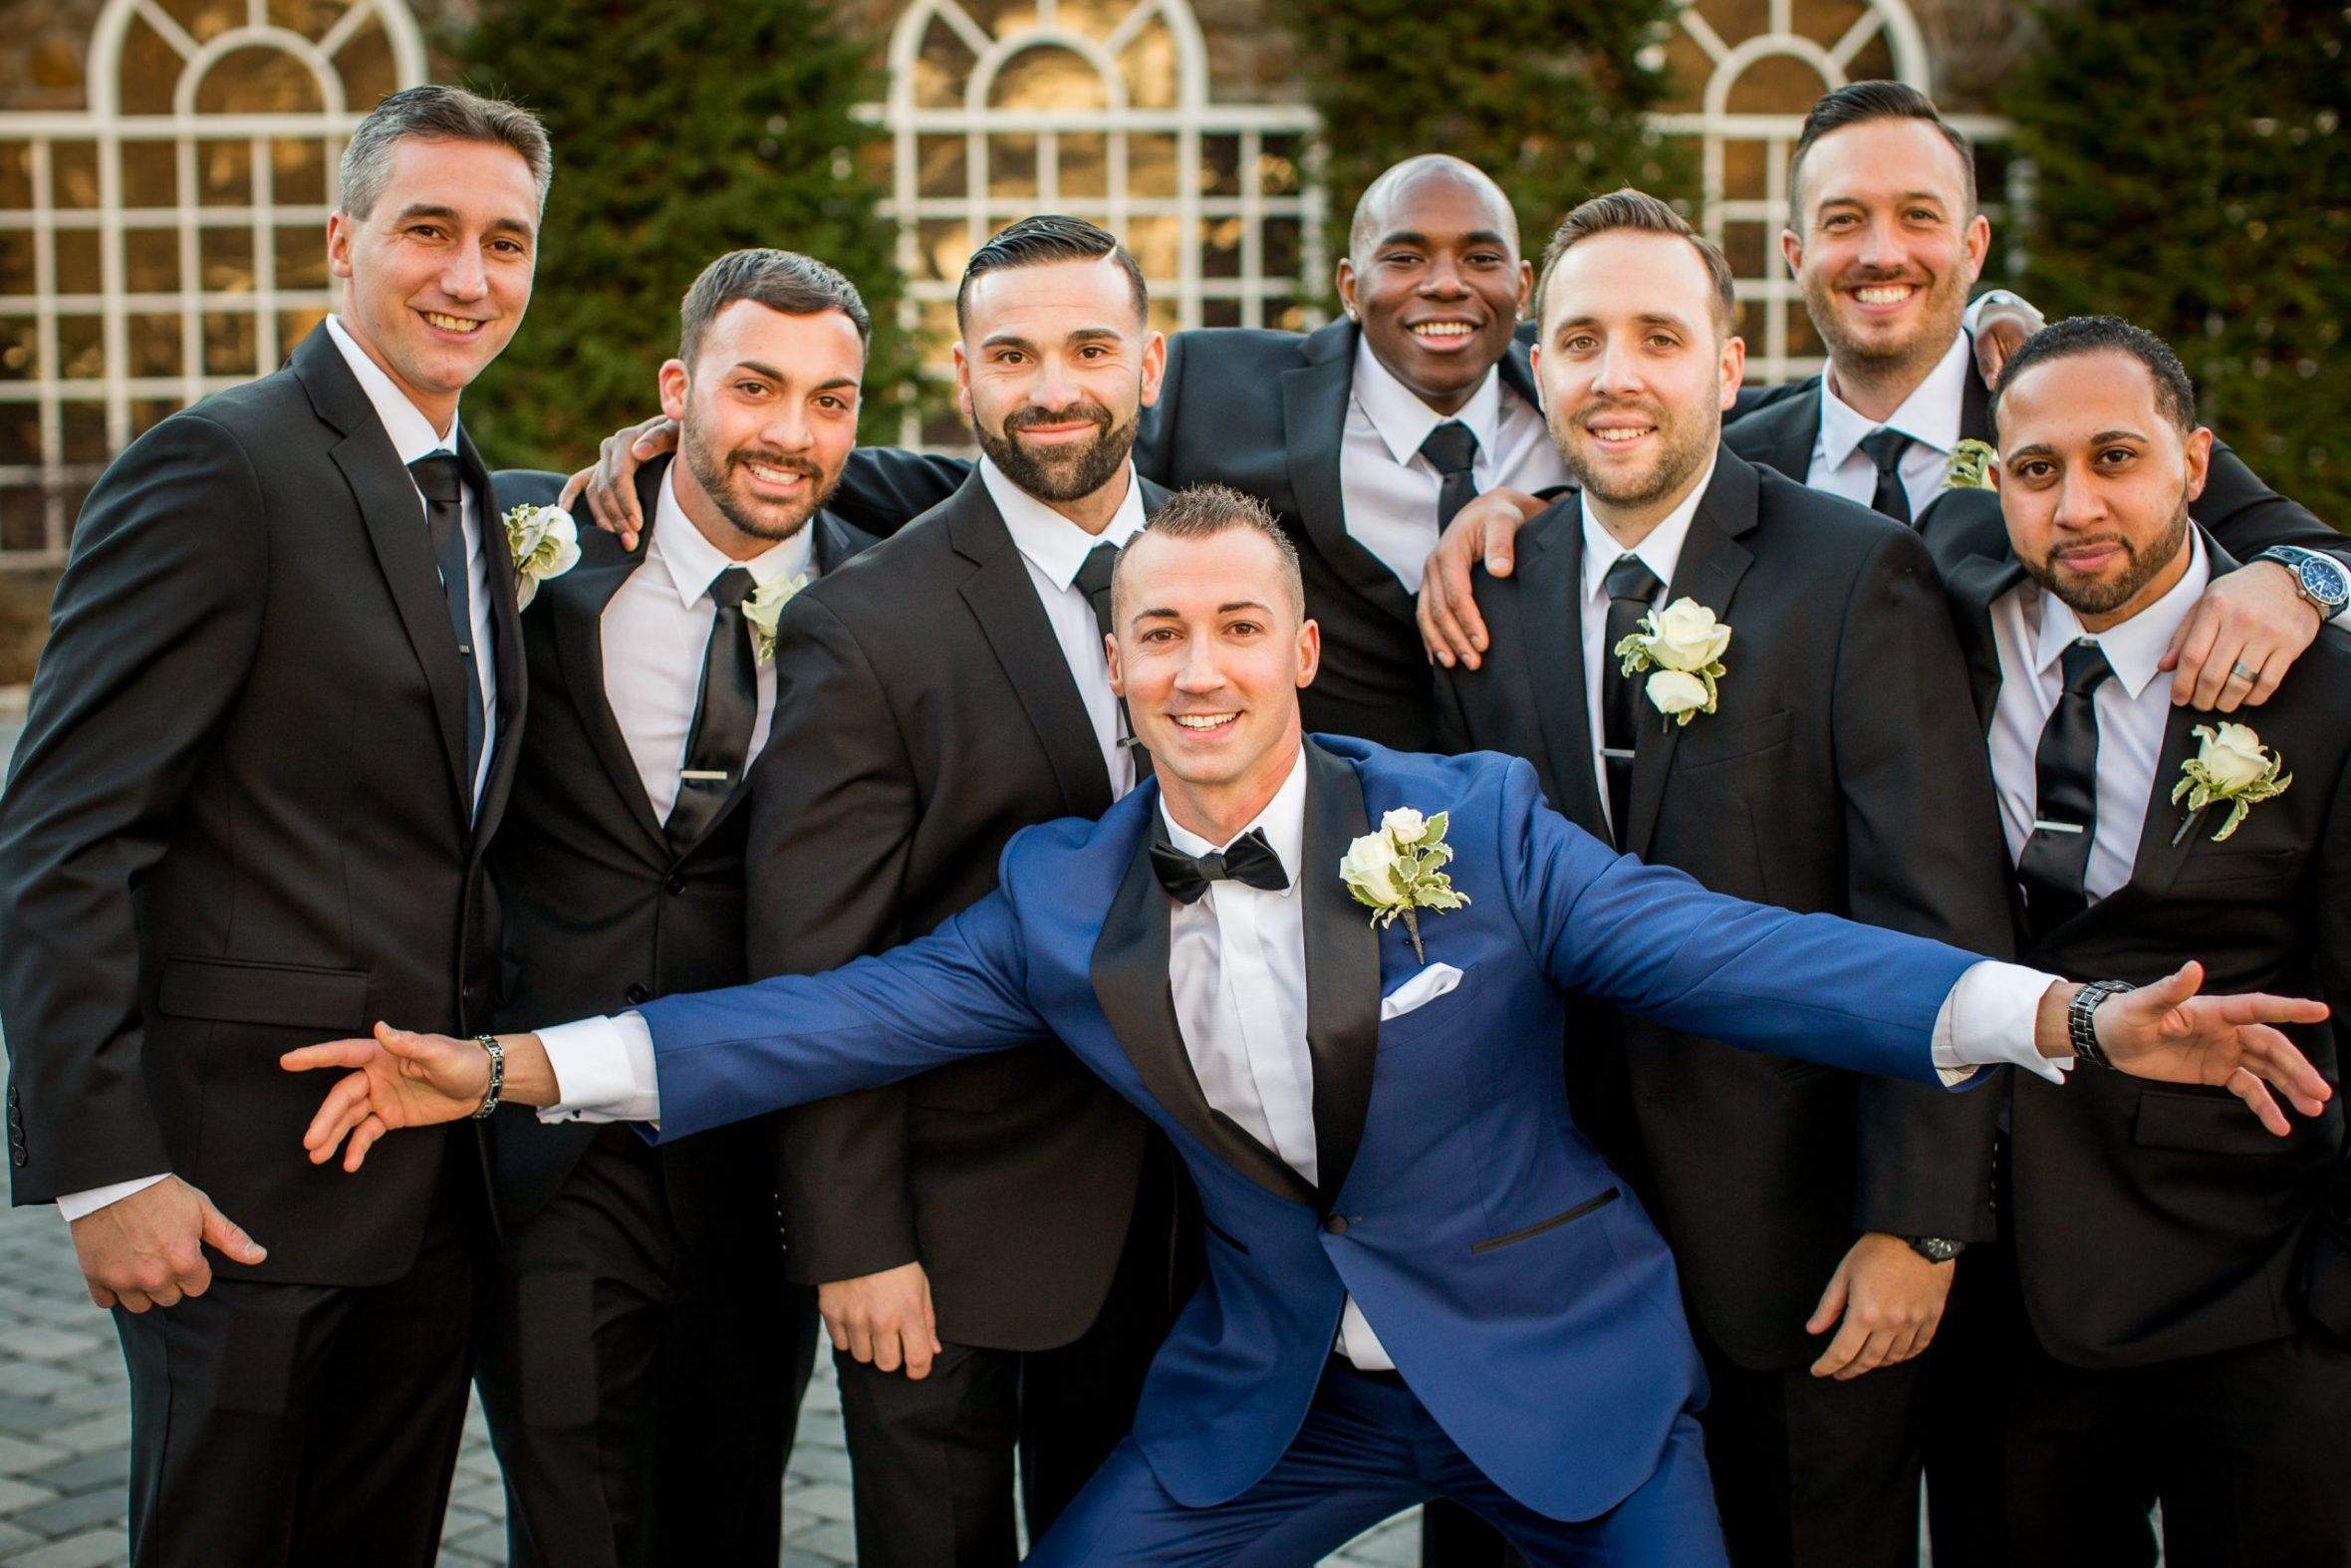 The grooms and groomsmen